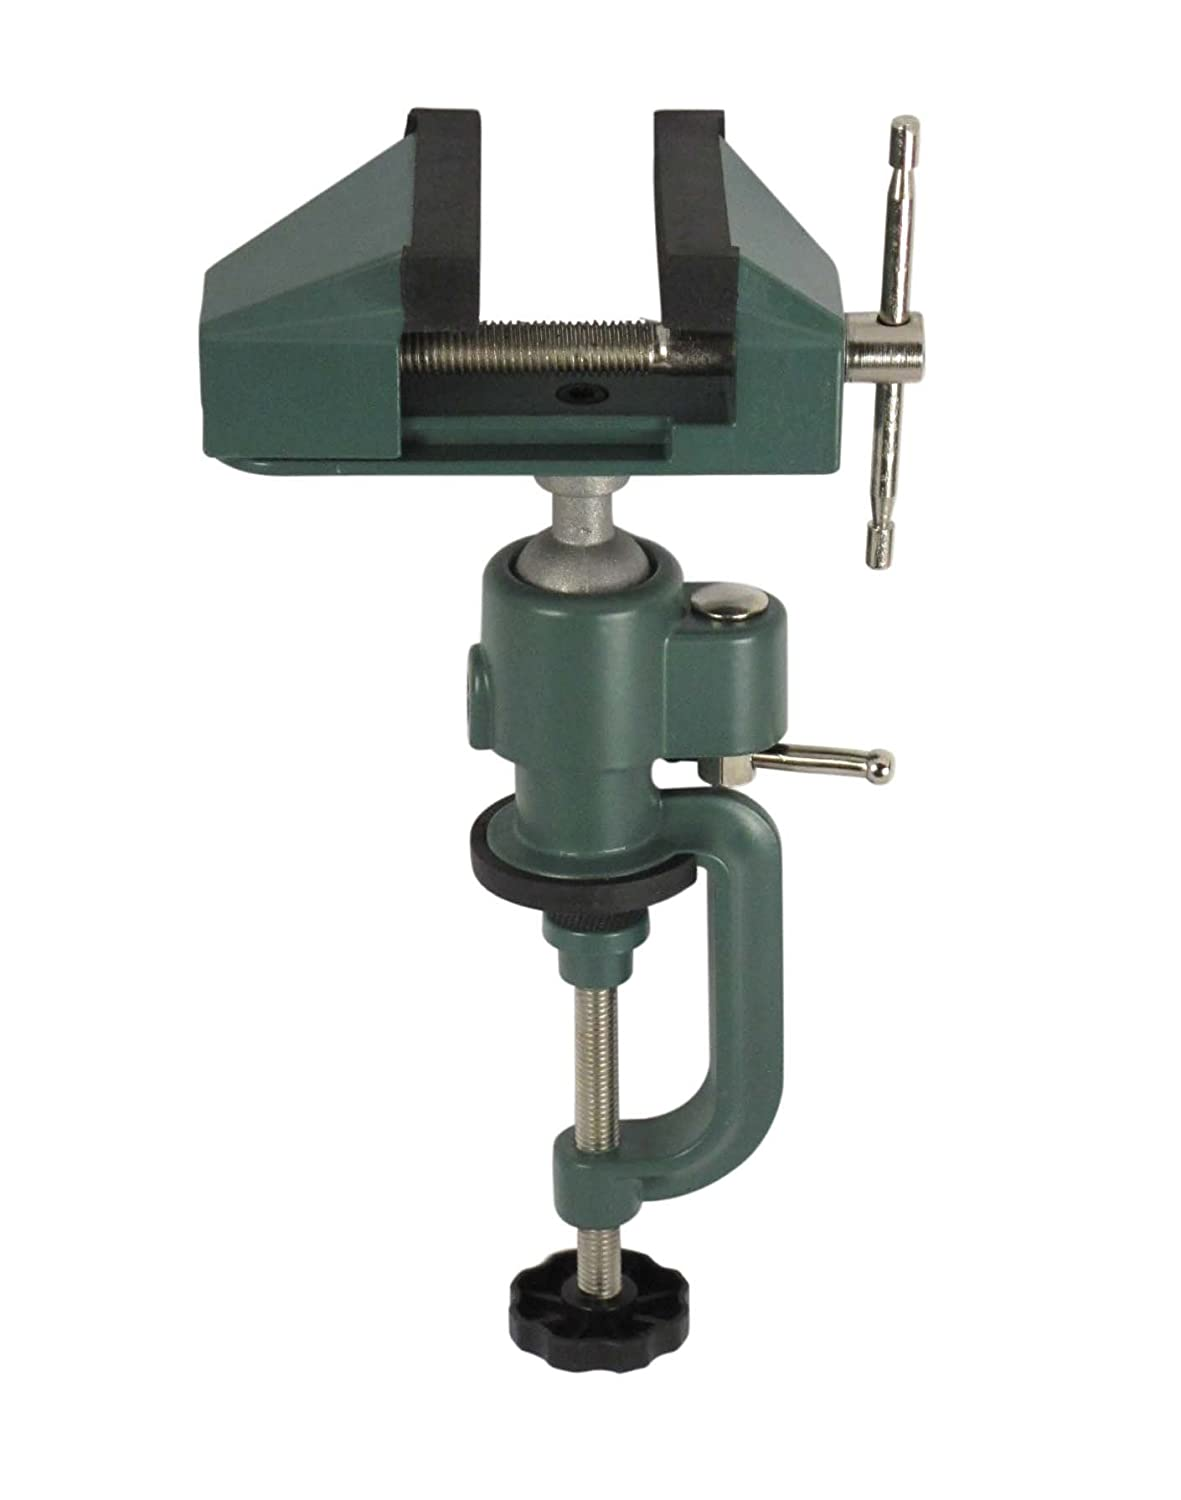 universal table vise